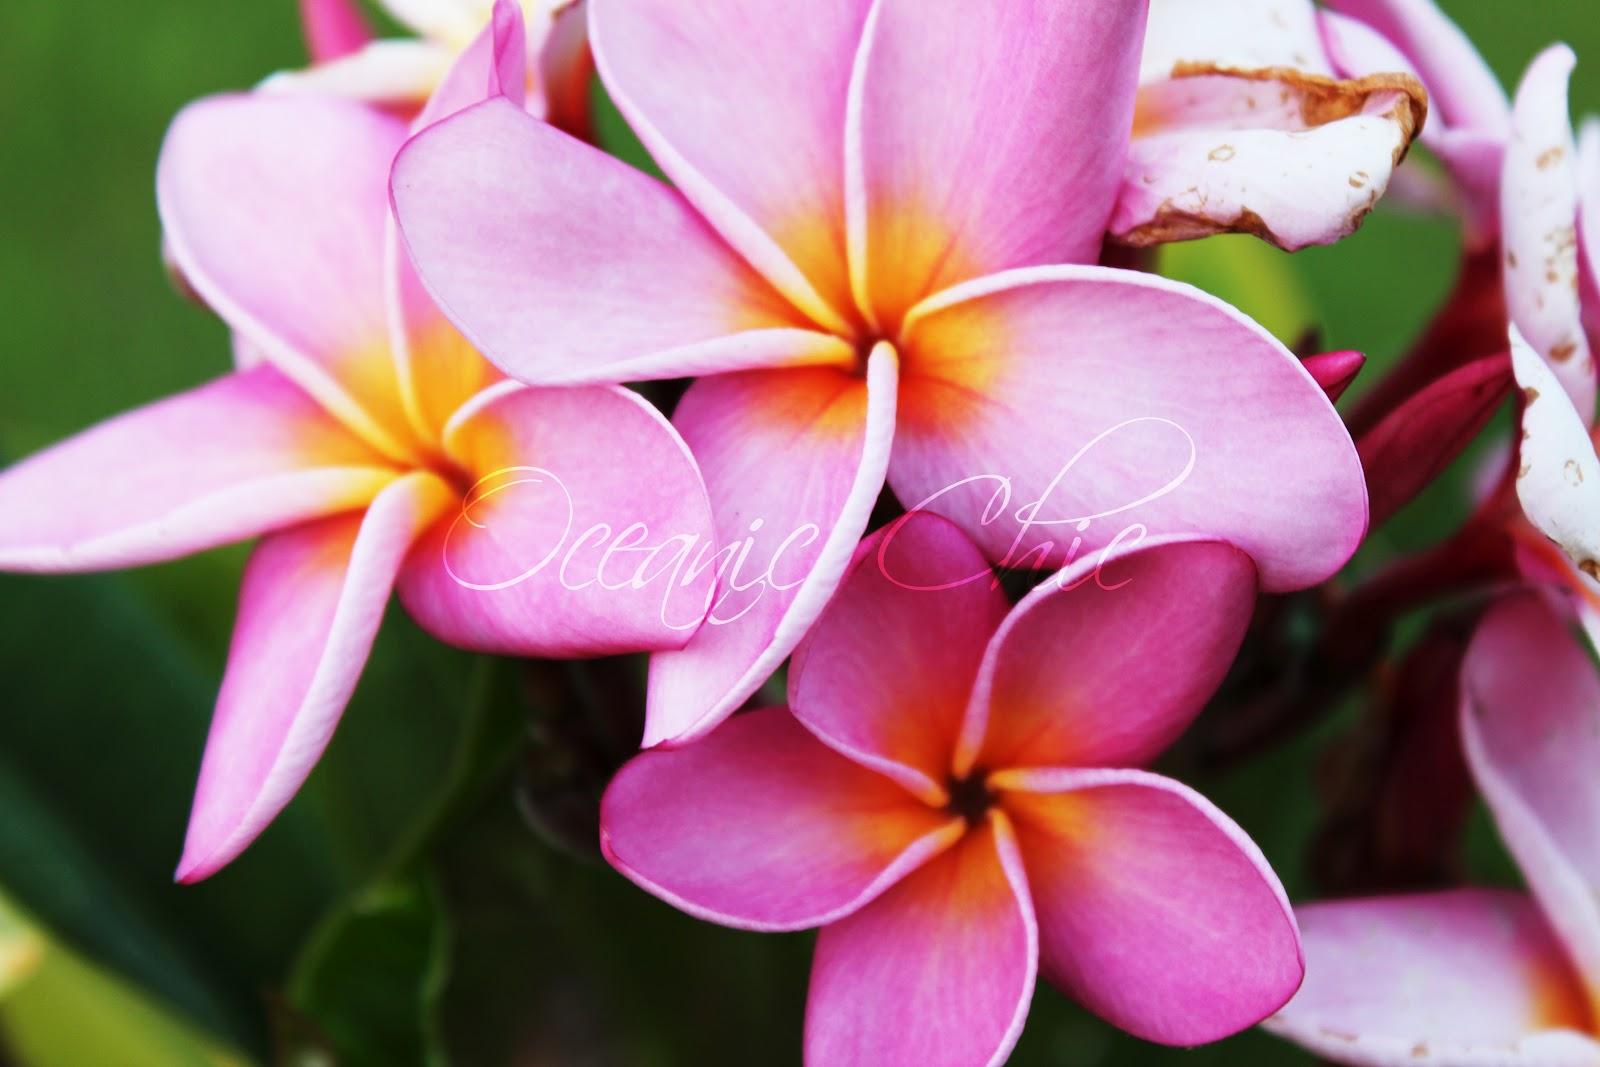 Oceanic Chic Pink Hawaiian Flowers